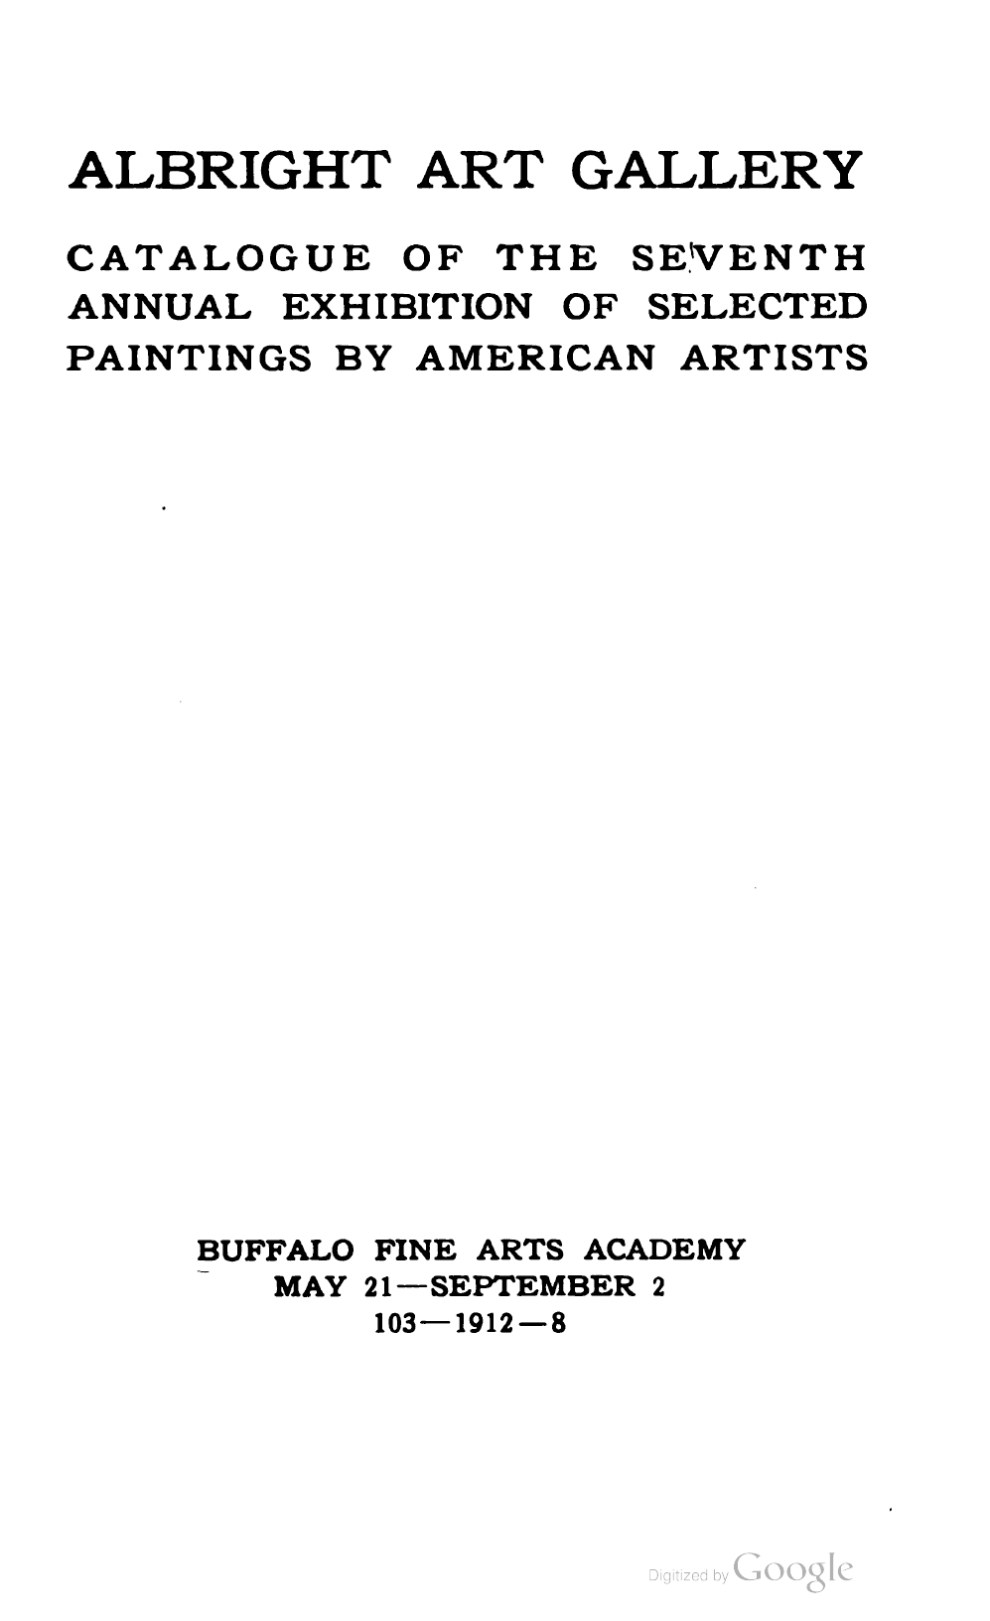 "1912 Buffalo Fine Arts Academy, Albright Art Gallery, Buffalo, NY, ""Seventh Annual Exhibition of Selected Paintings by American Artists"", May 21 – September 2"